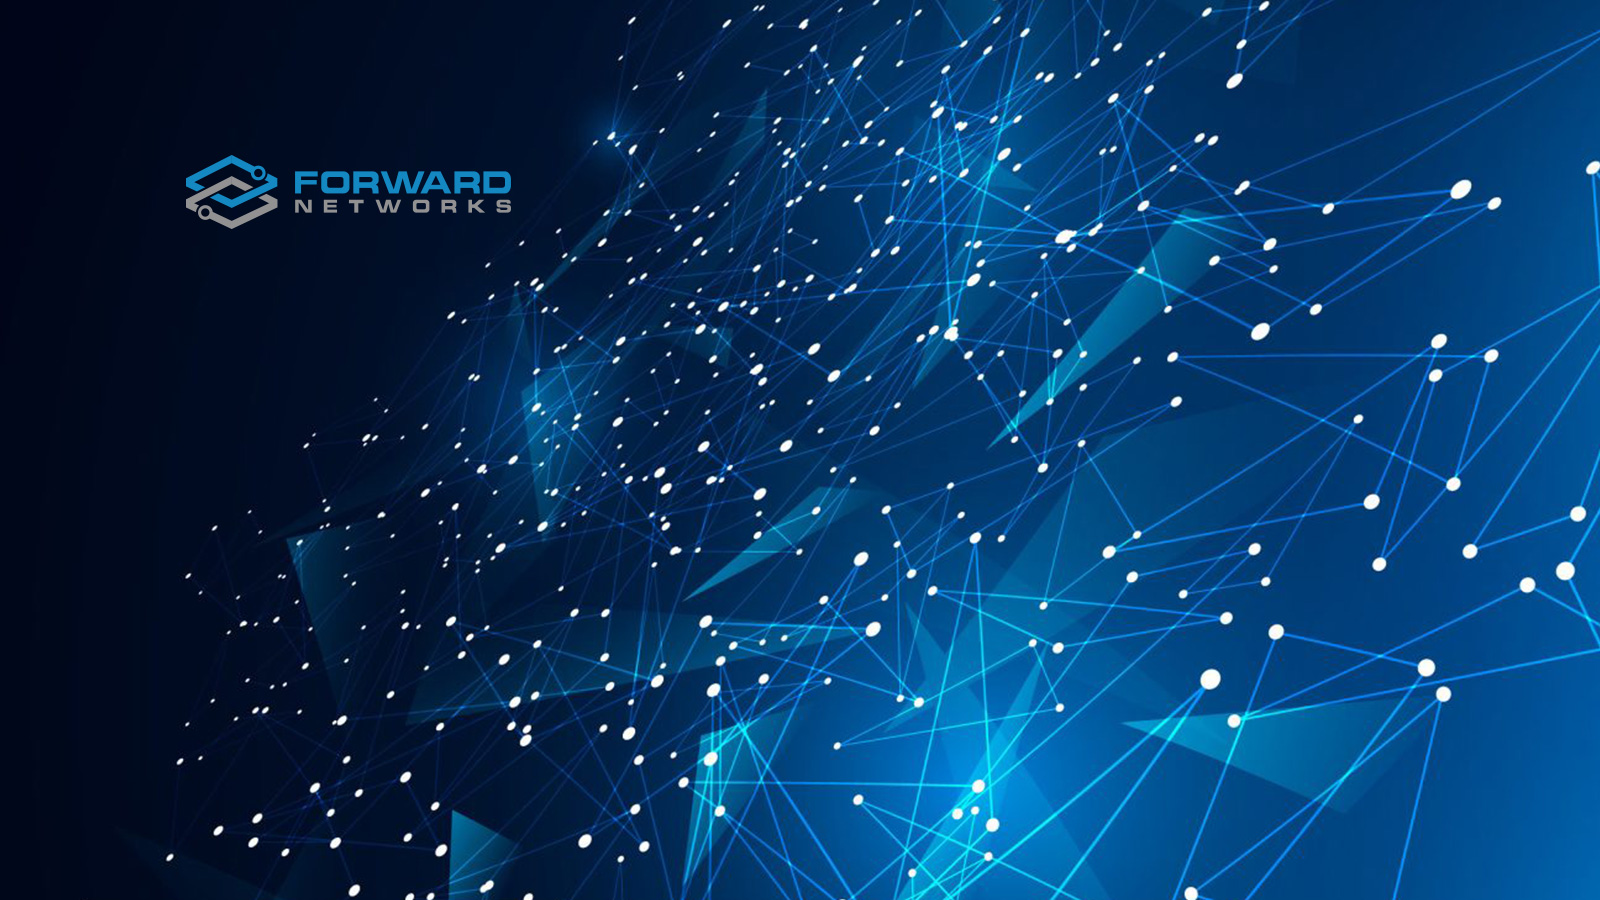 Forward Networks Announces Support of Cisco ACI